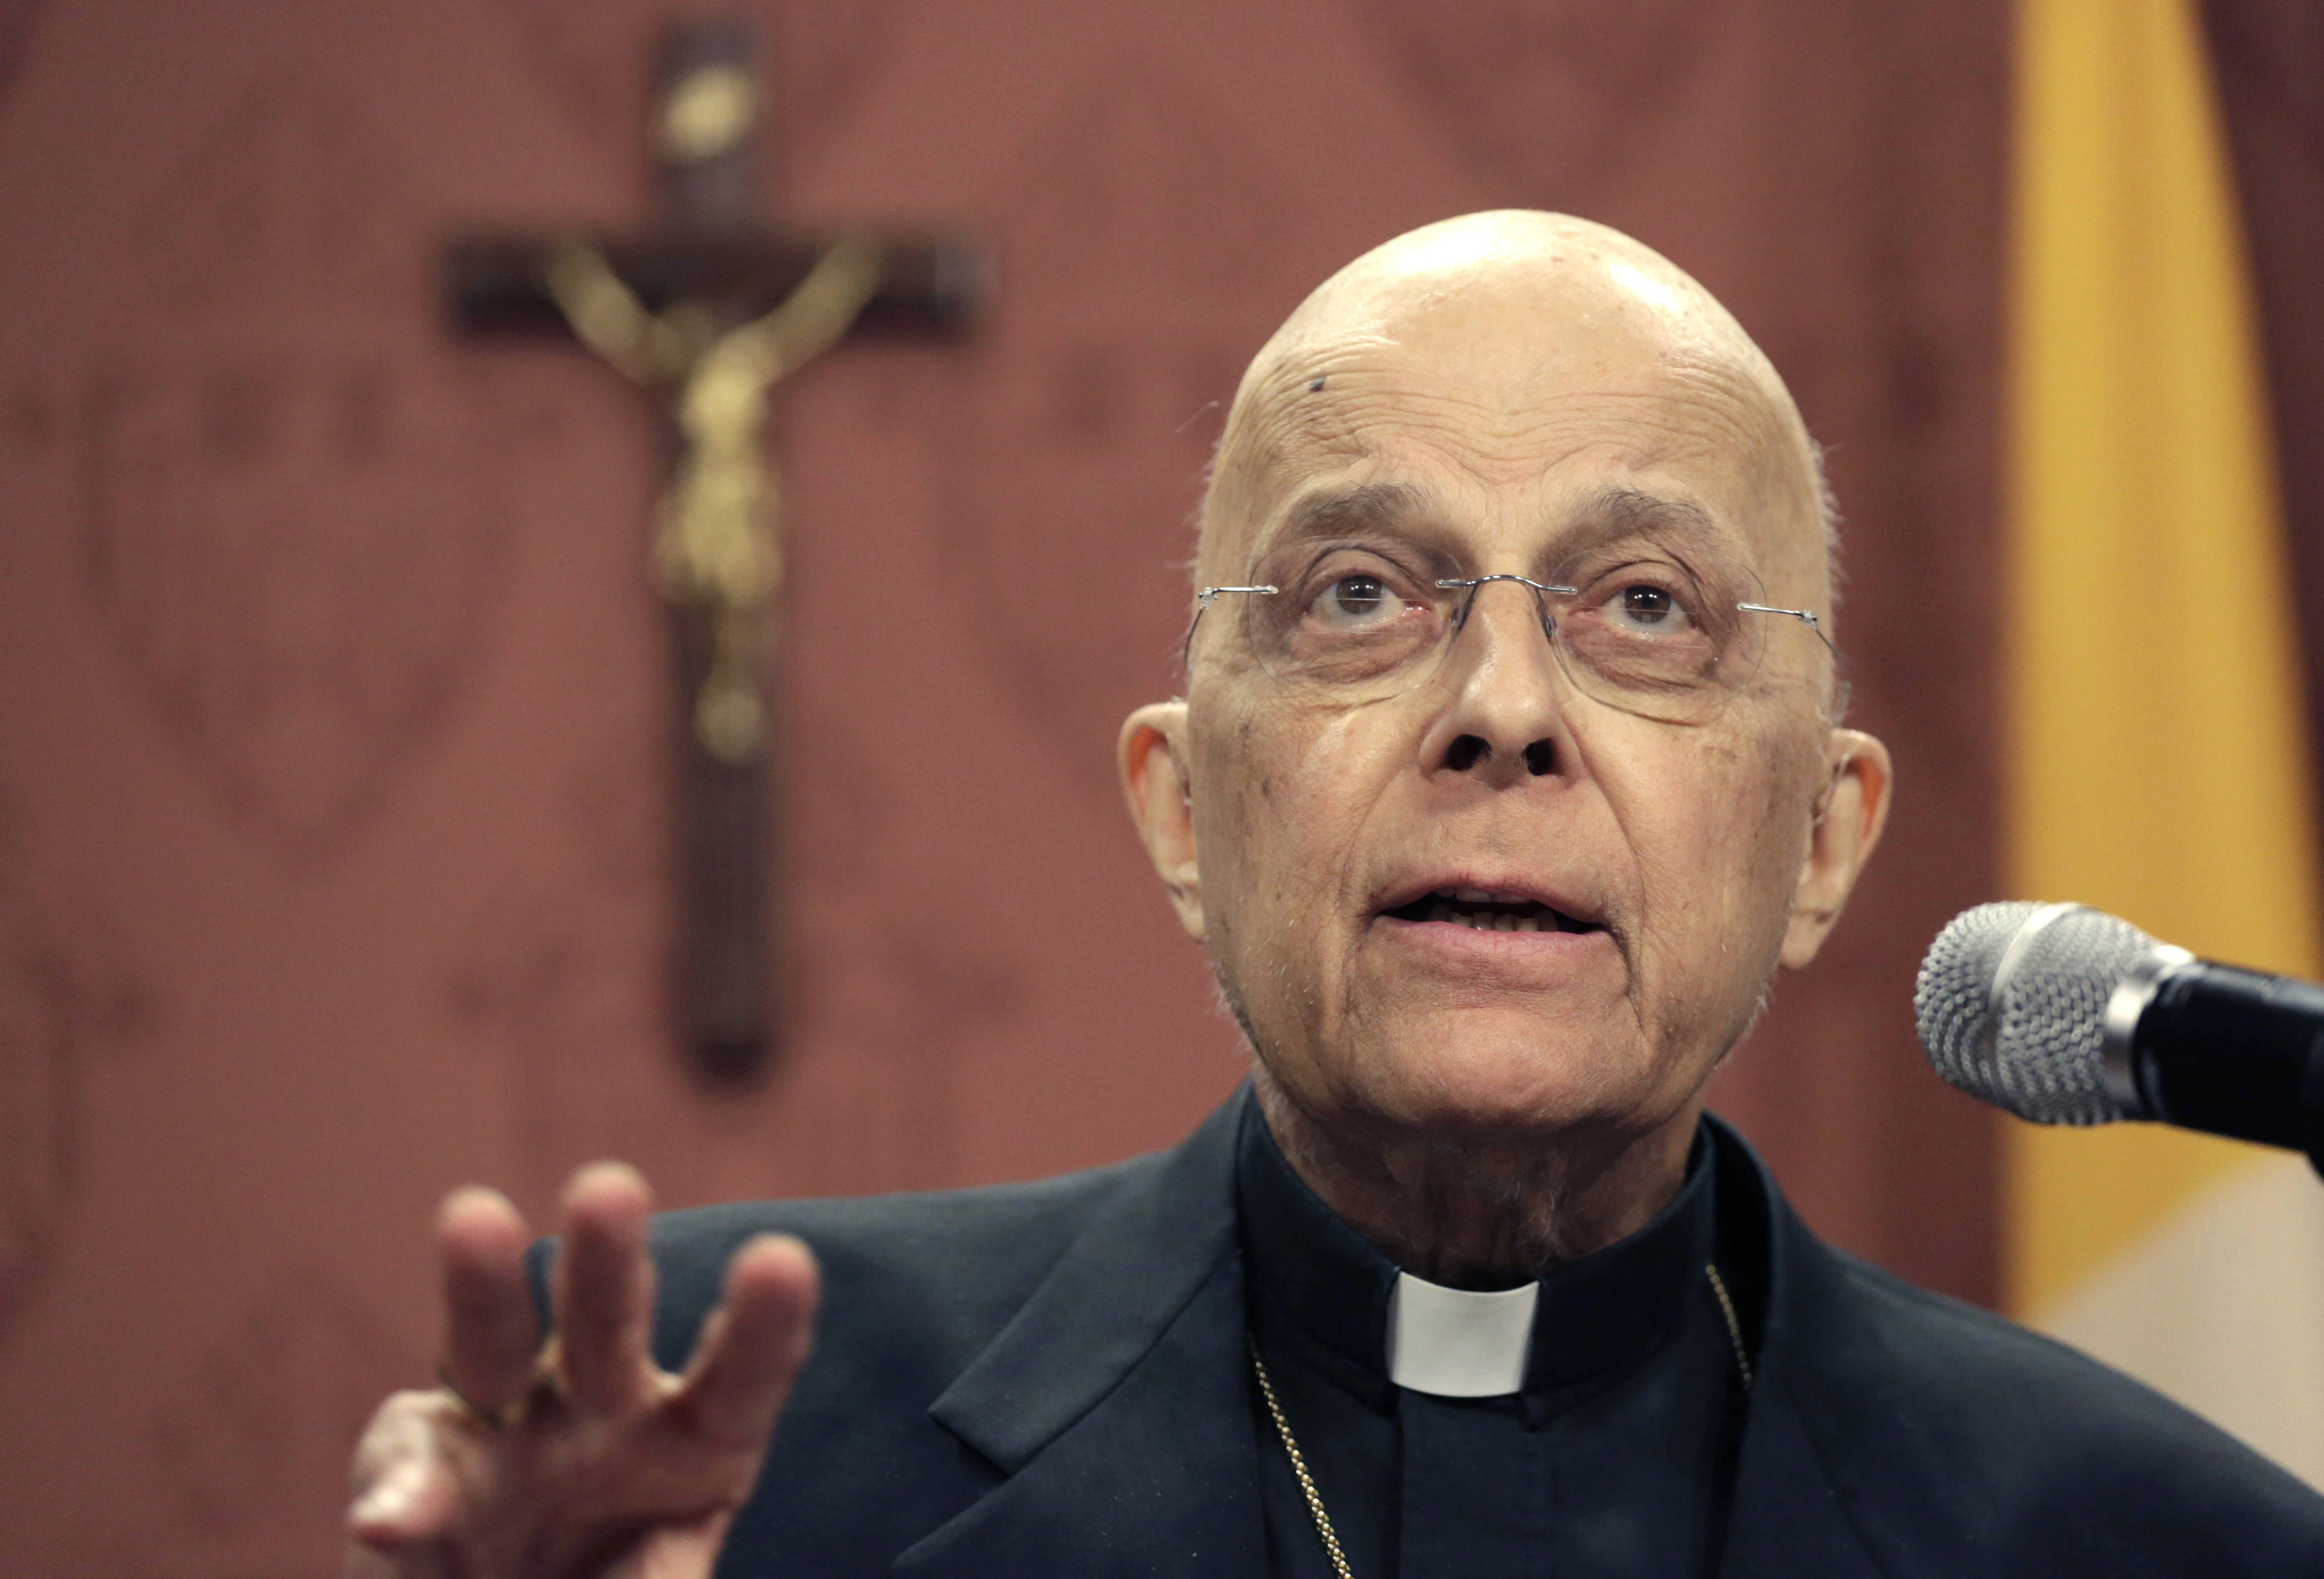 Chicago Cardinal Francis George is trying an experimental drug to treat his cancer.